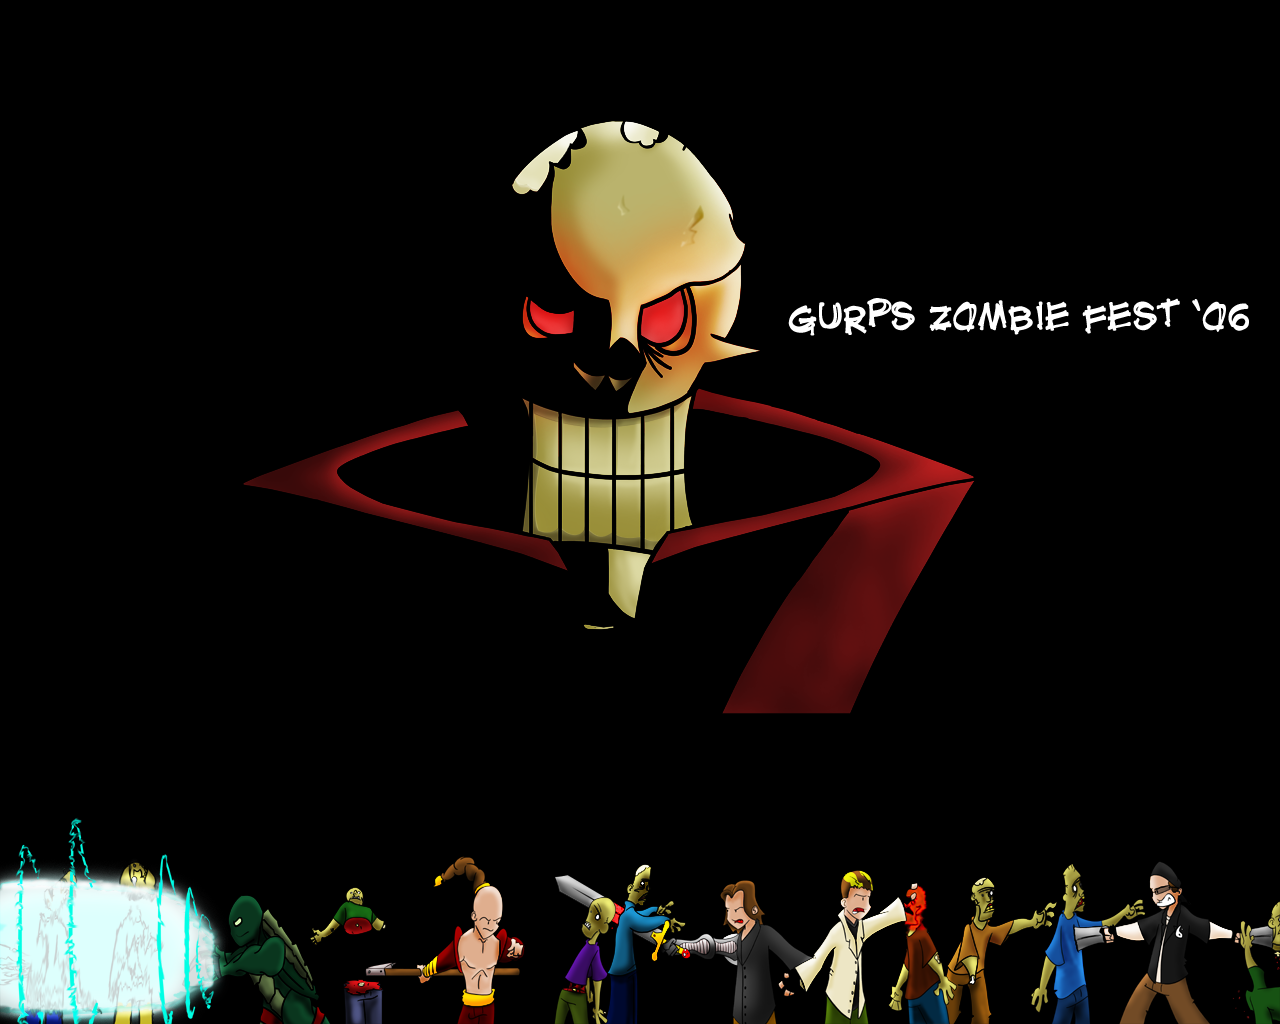 Gurps Zombie Fest '06 poster